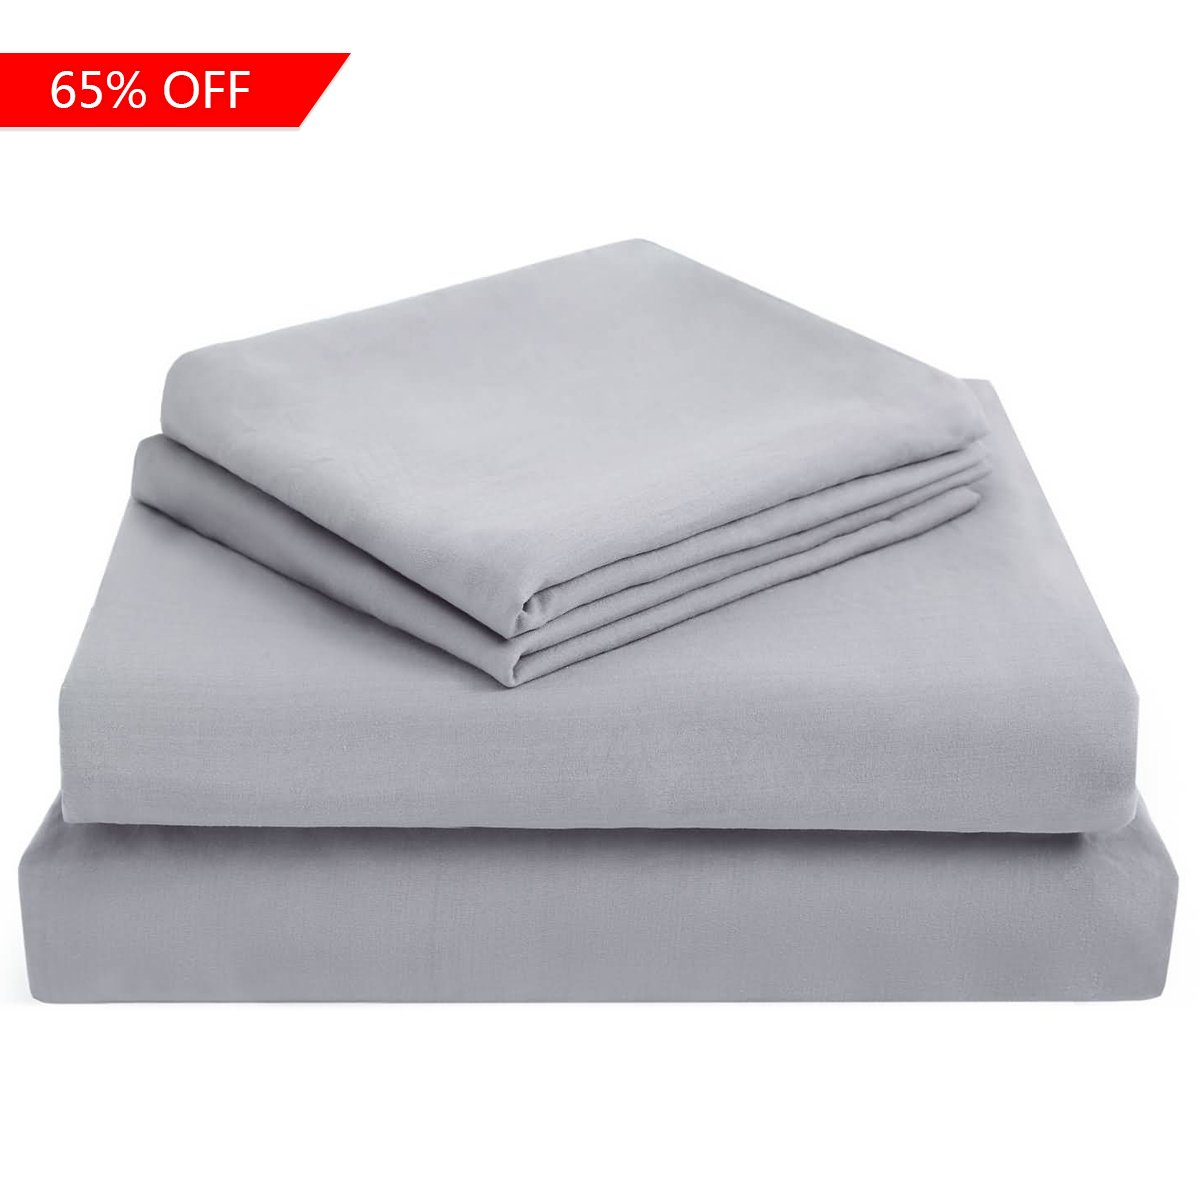 ASHENGVER Microfiber Fitted Bed Sheet Sets Extra Soft Bed Sheets Set - Dark Gray Twin Fitted Sheet Sets-(1 Flat Sheet, 1 Fitted Sheet With Deep Pocket, 1 Pillowcase)